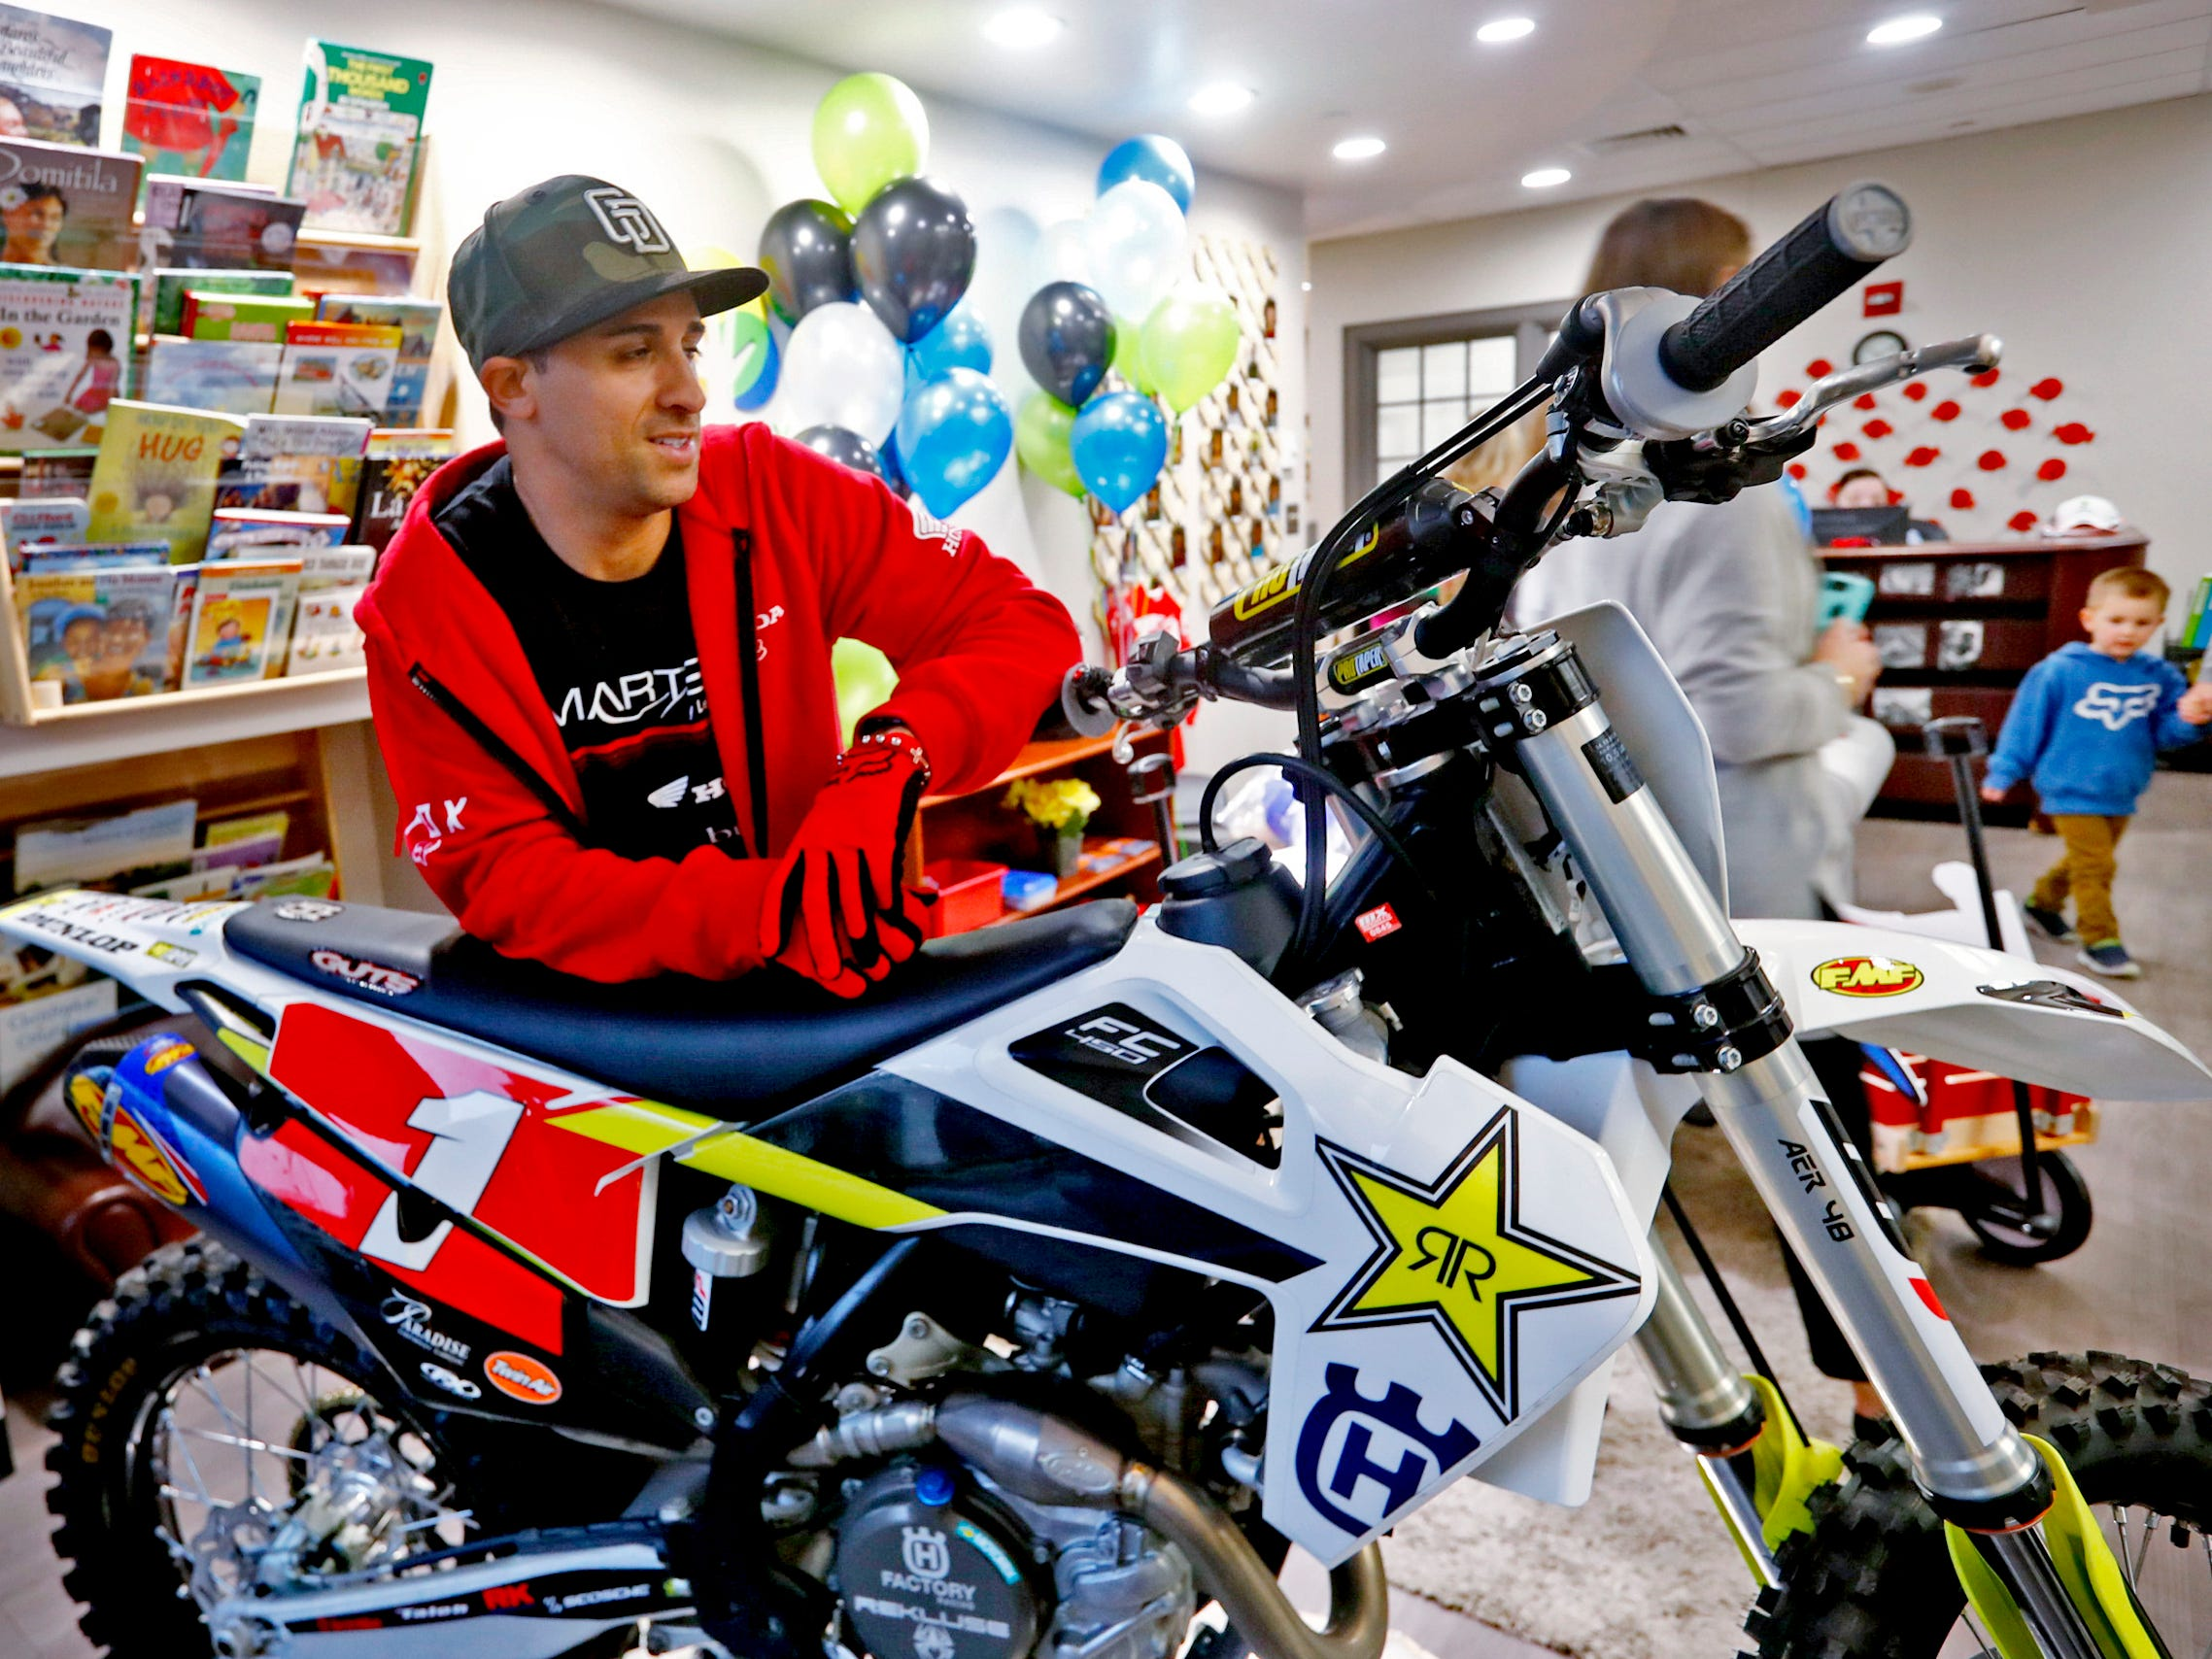 Supercross racer Mike Alessi leans on a bike simulator as he visits with kids at Day Early Learning Center, Thursday, March 14, 2019.  Alessi provided Supercross rider jerseys and hats for the kids and gave wagon rides, on a break before the upcoming Supercross race.